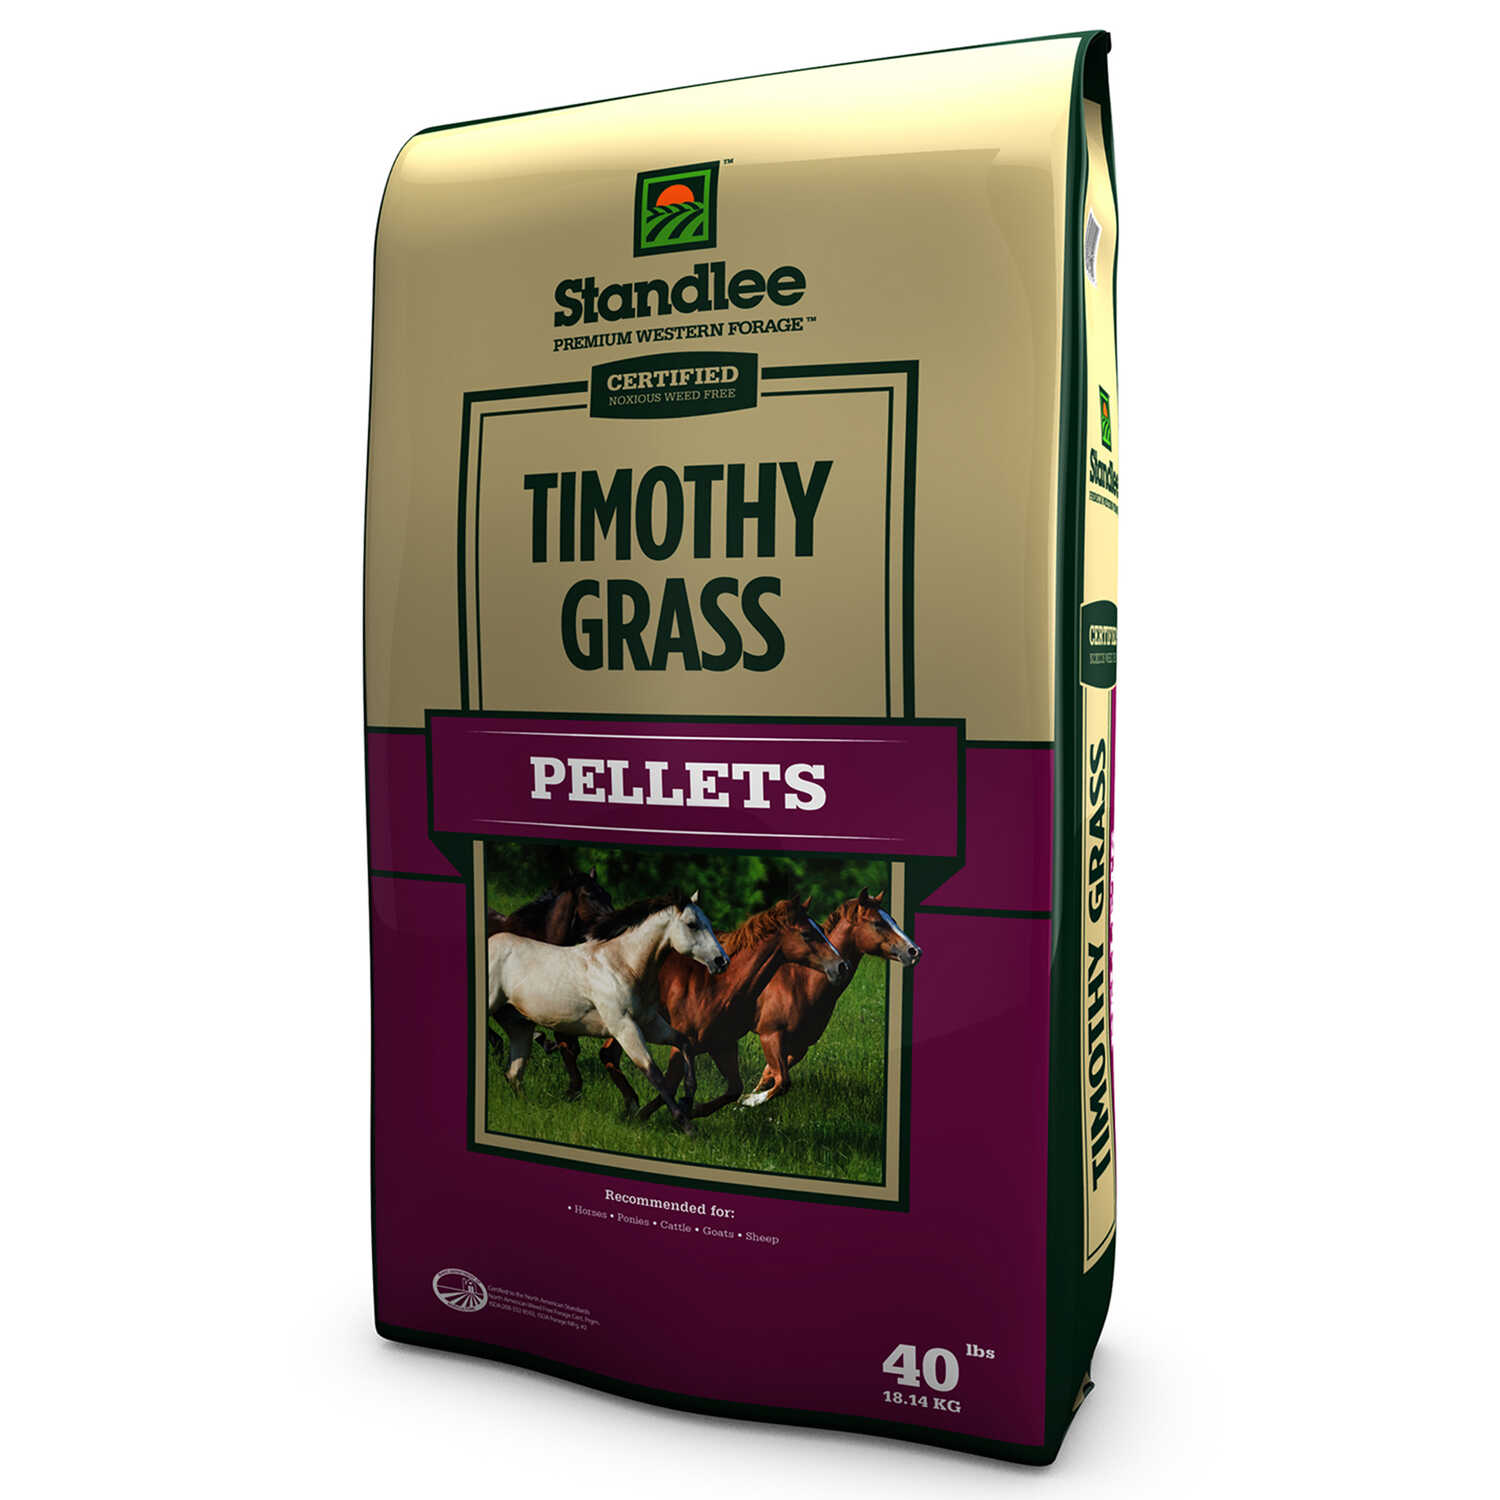 Standlee Premium Western Forage  Timothy Grass  Pellets  For Horses 40 lb.